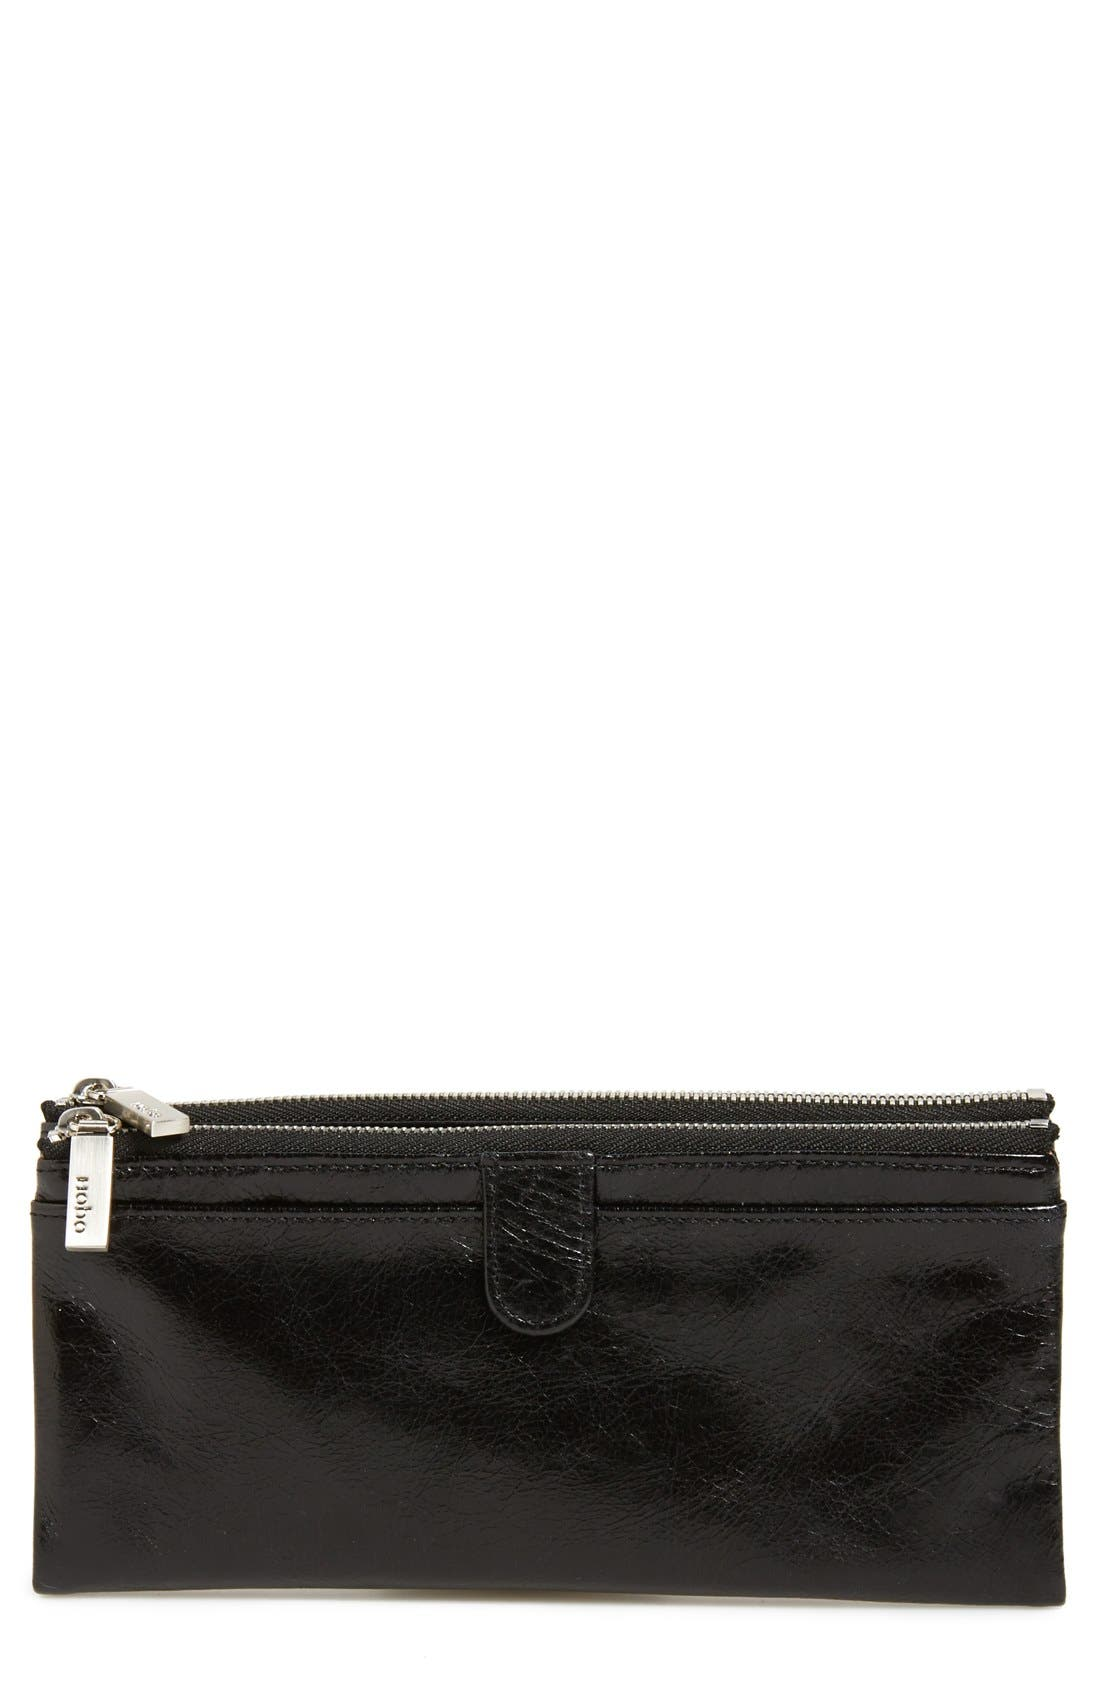 HOBO Taylor Glazed Wallet, Main, color, BLACK